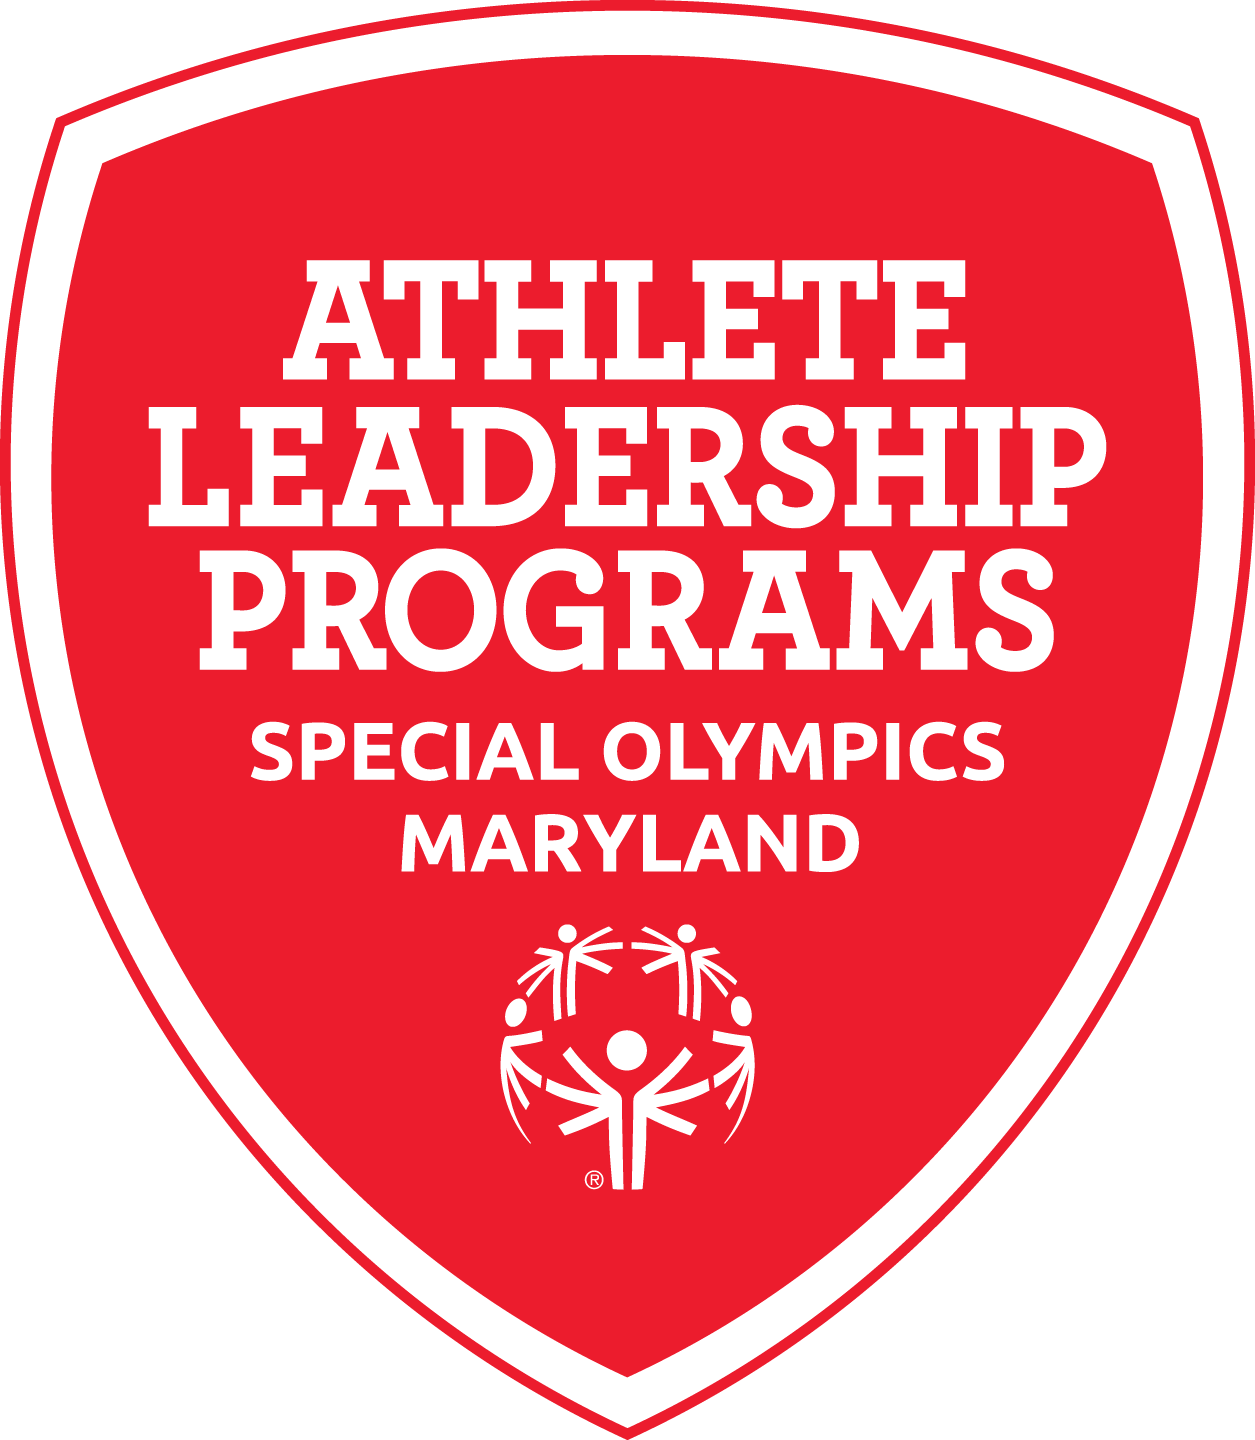 athlete leadership - special olympics maryland